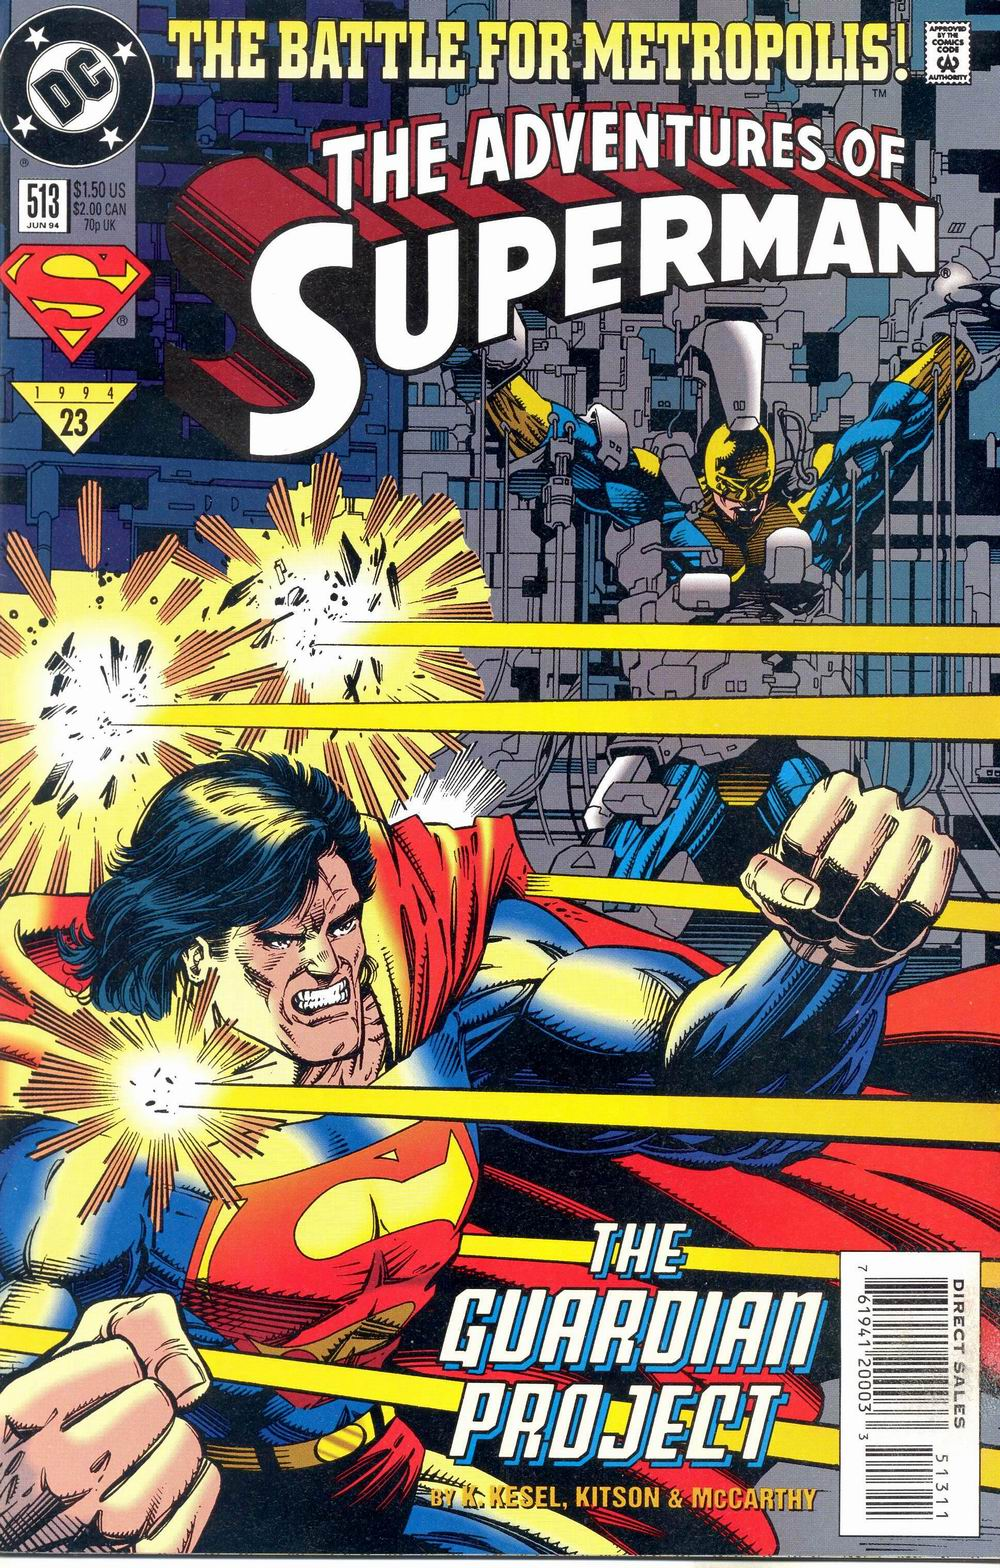 Adventures of Superman (1987) 513 Page 1